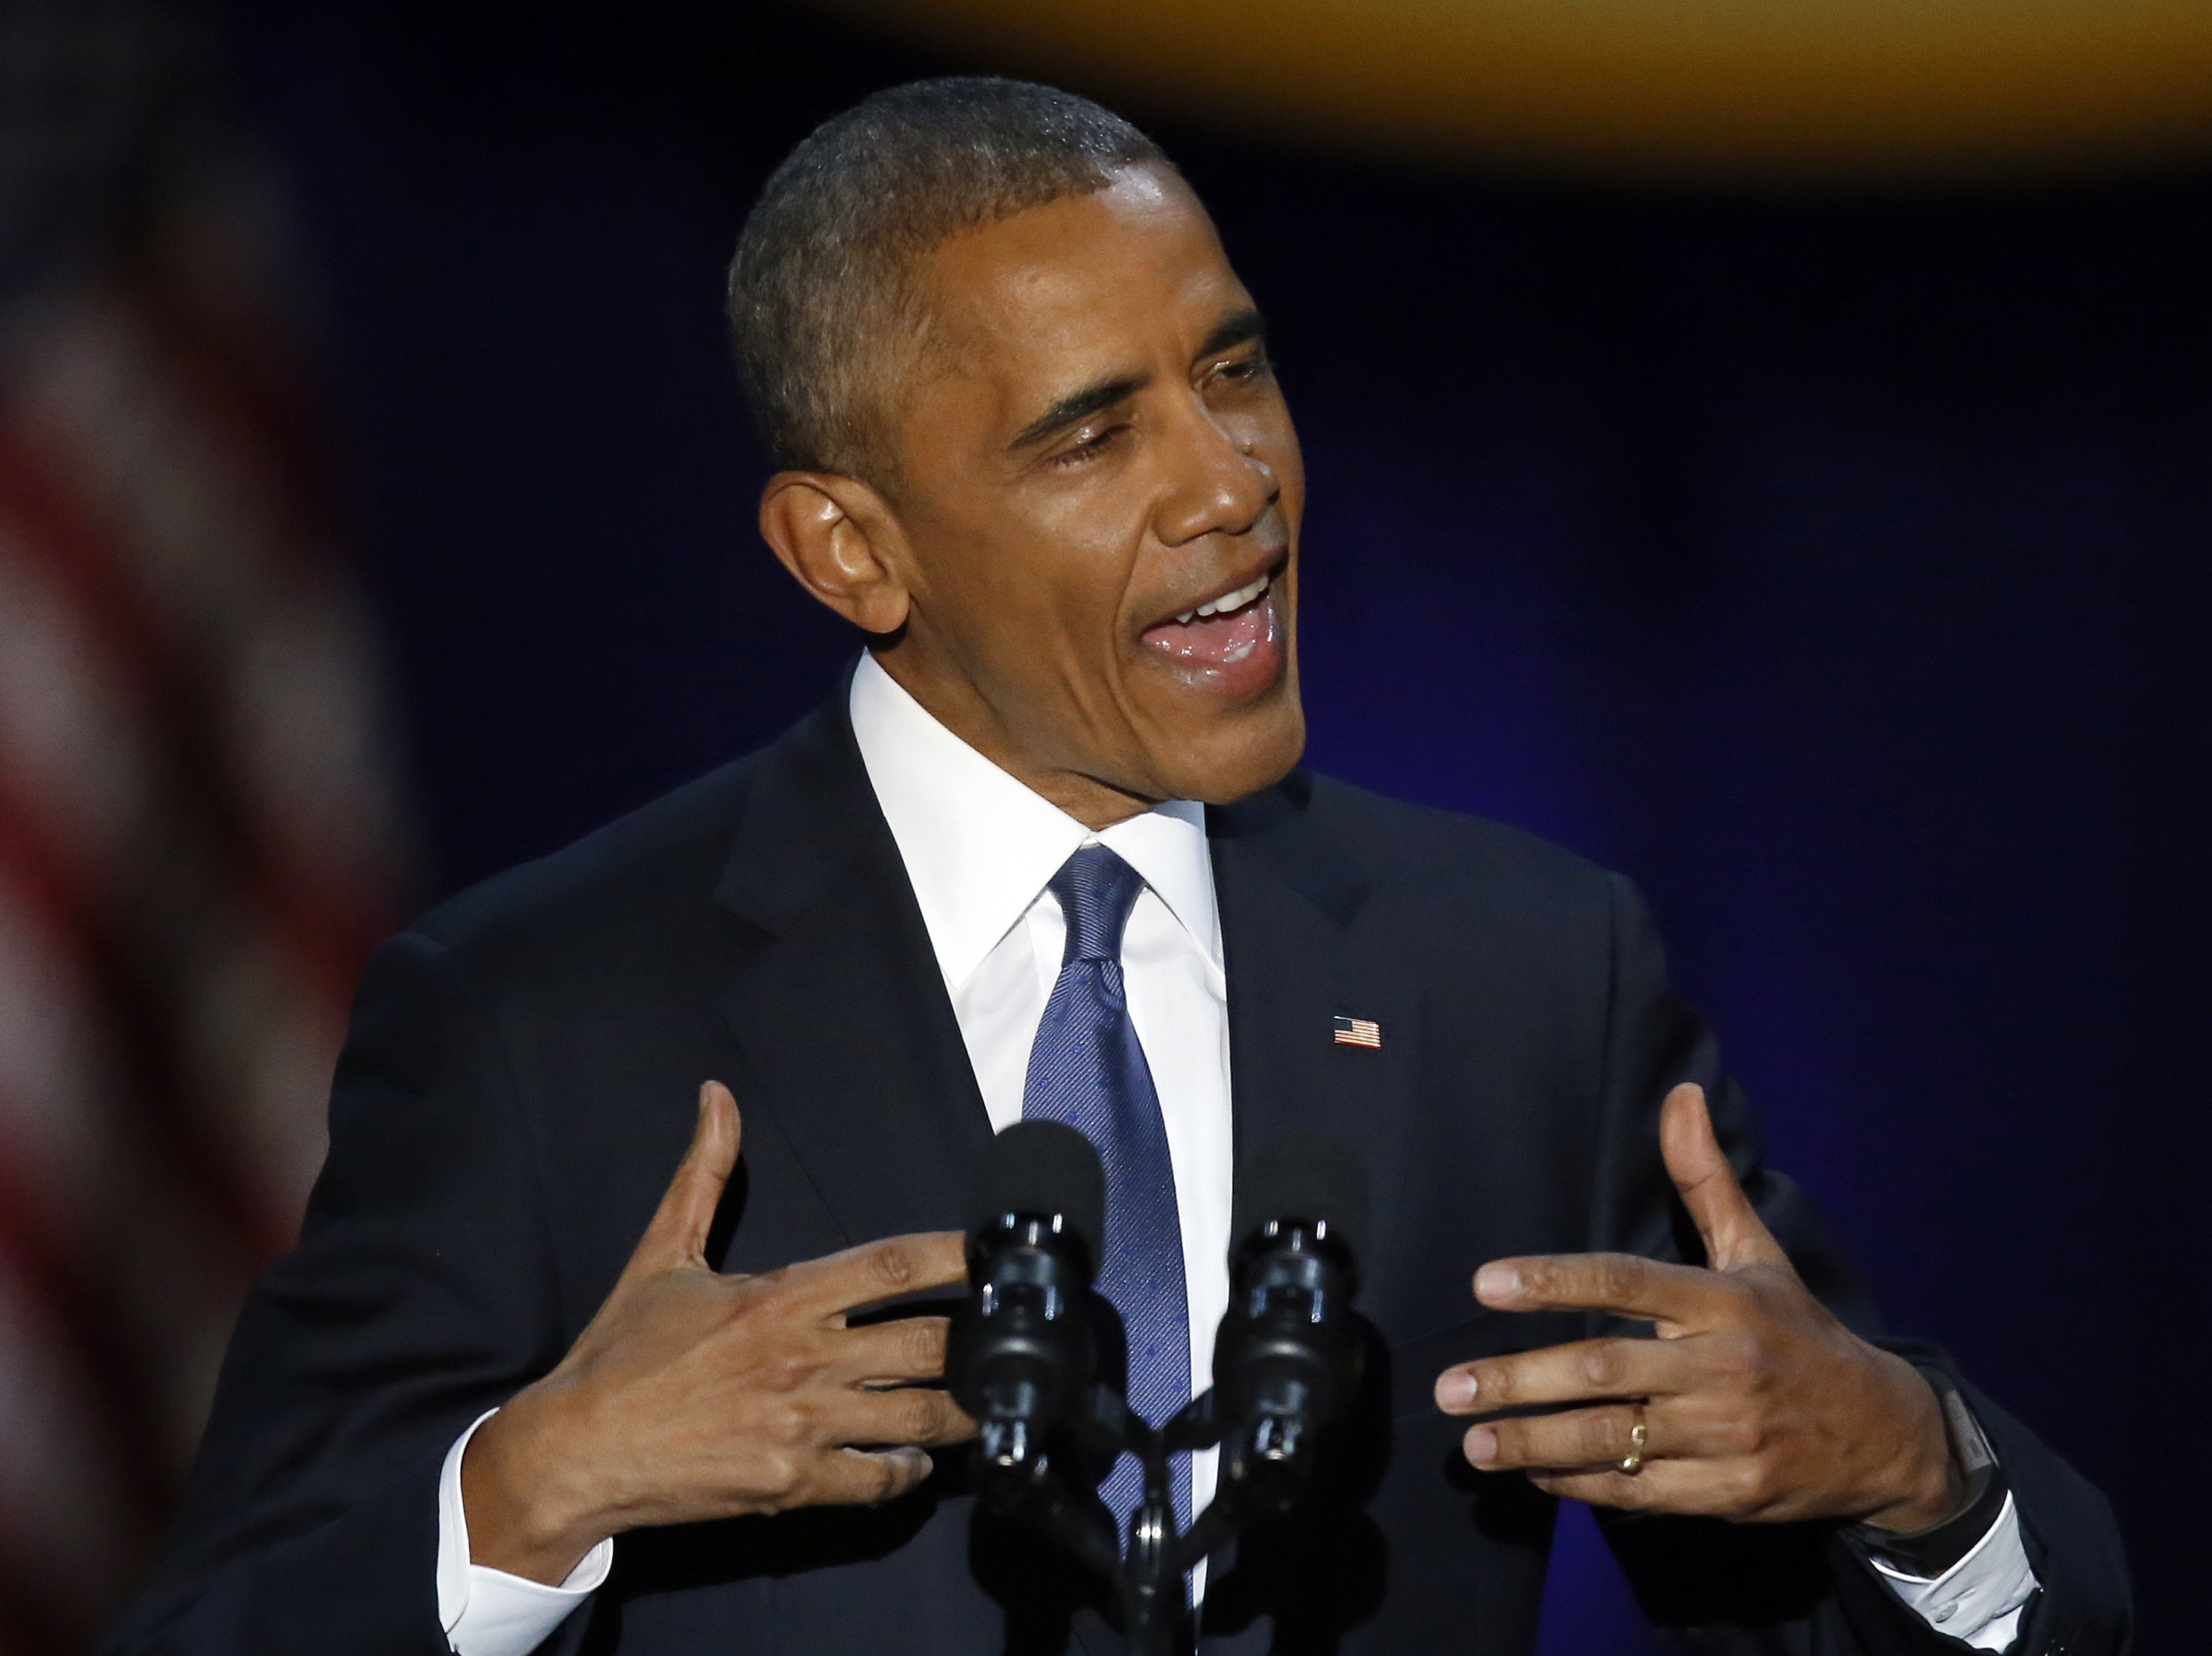 President Barack Obama speaks at McCormick Place in Chicago on Tuesday. (Charles Rex Arbogast/AP)